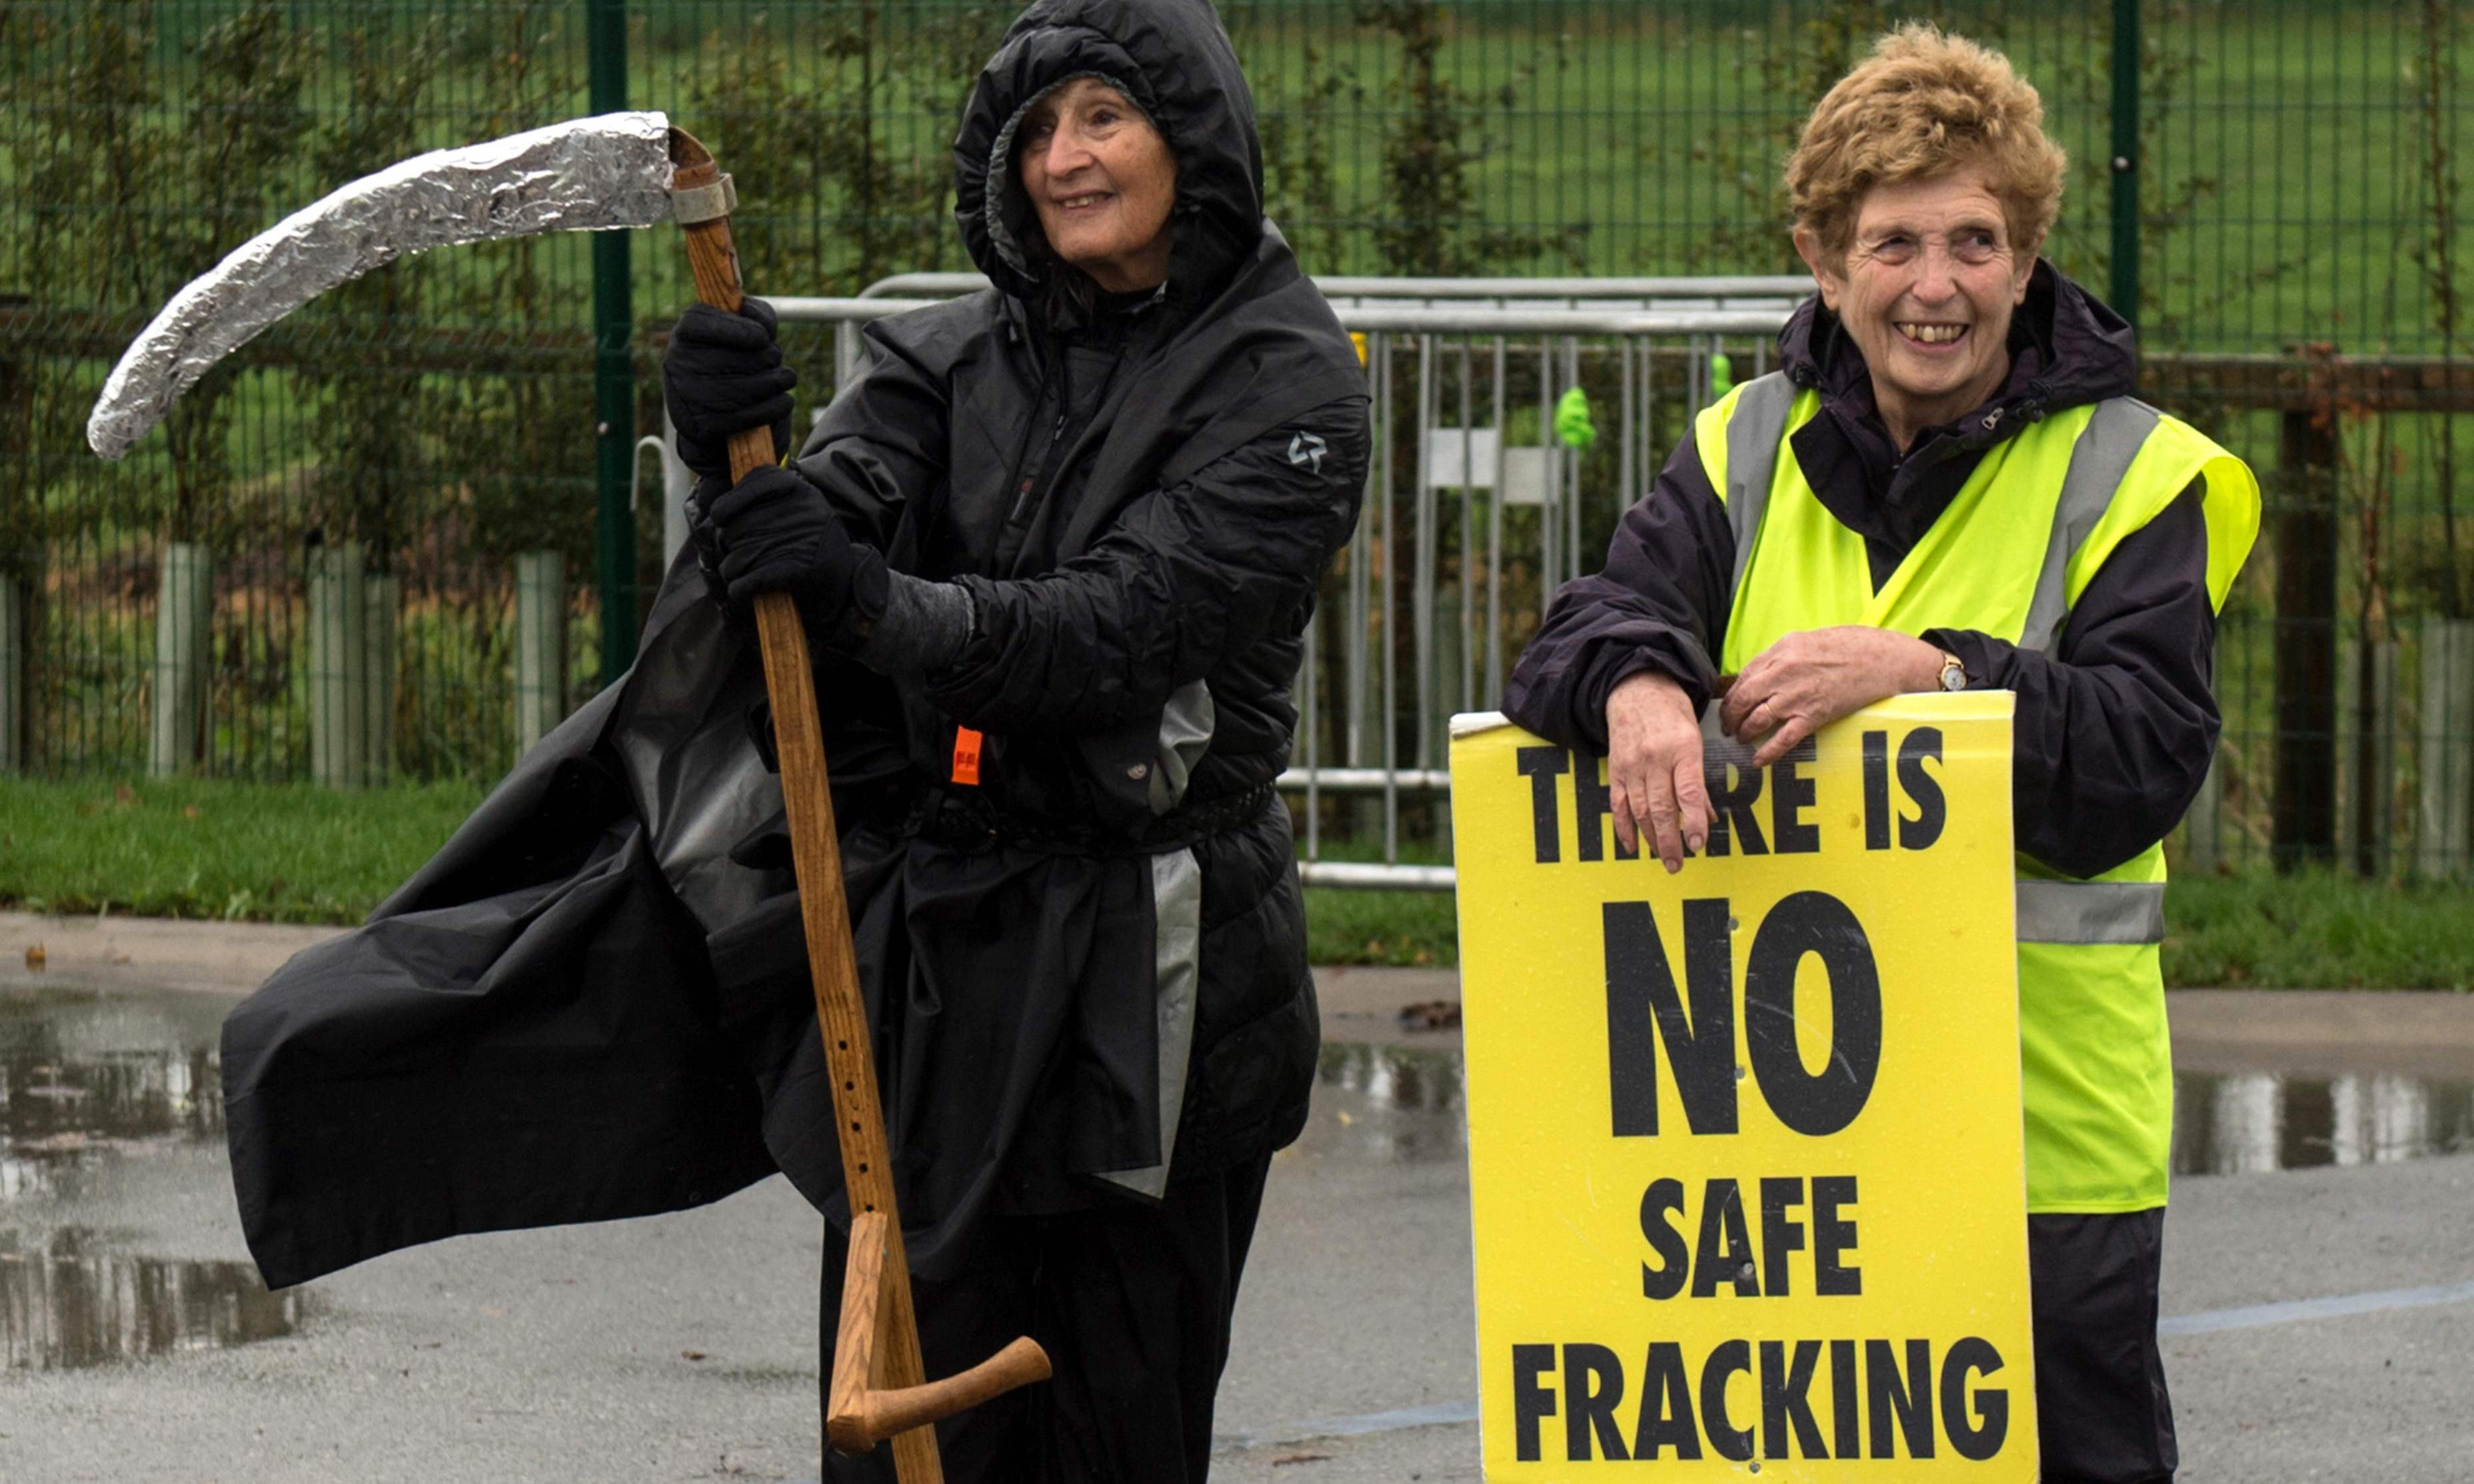 Activists warn of 'fracking by stealth' and call for acid fracking ban